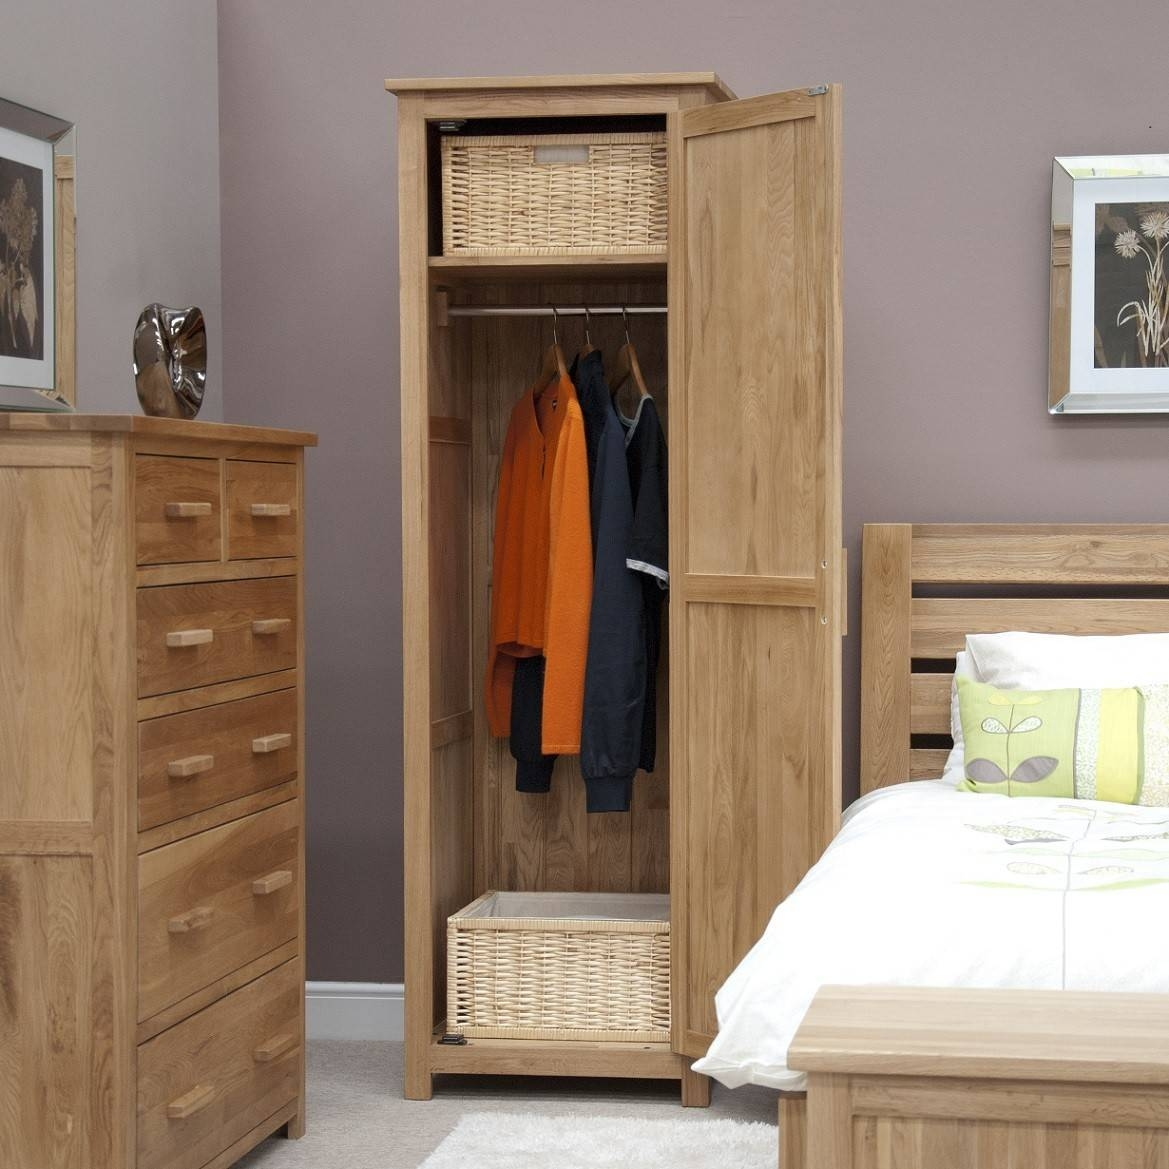 Opus Solid Oak 1 Door Single Wardrobe | Oak Furniture Uk pertaining to Single Oak Wardrobes With Drawers (Image 9 of 15)